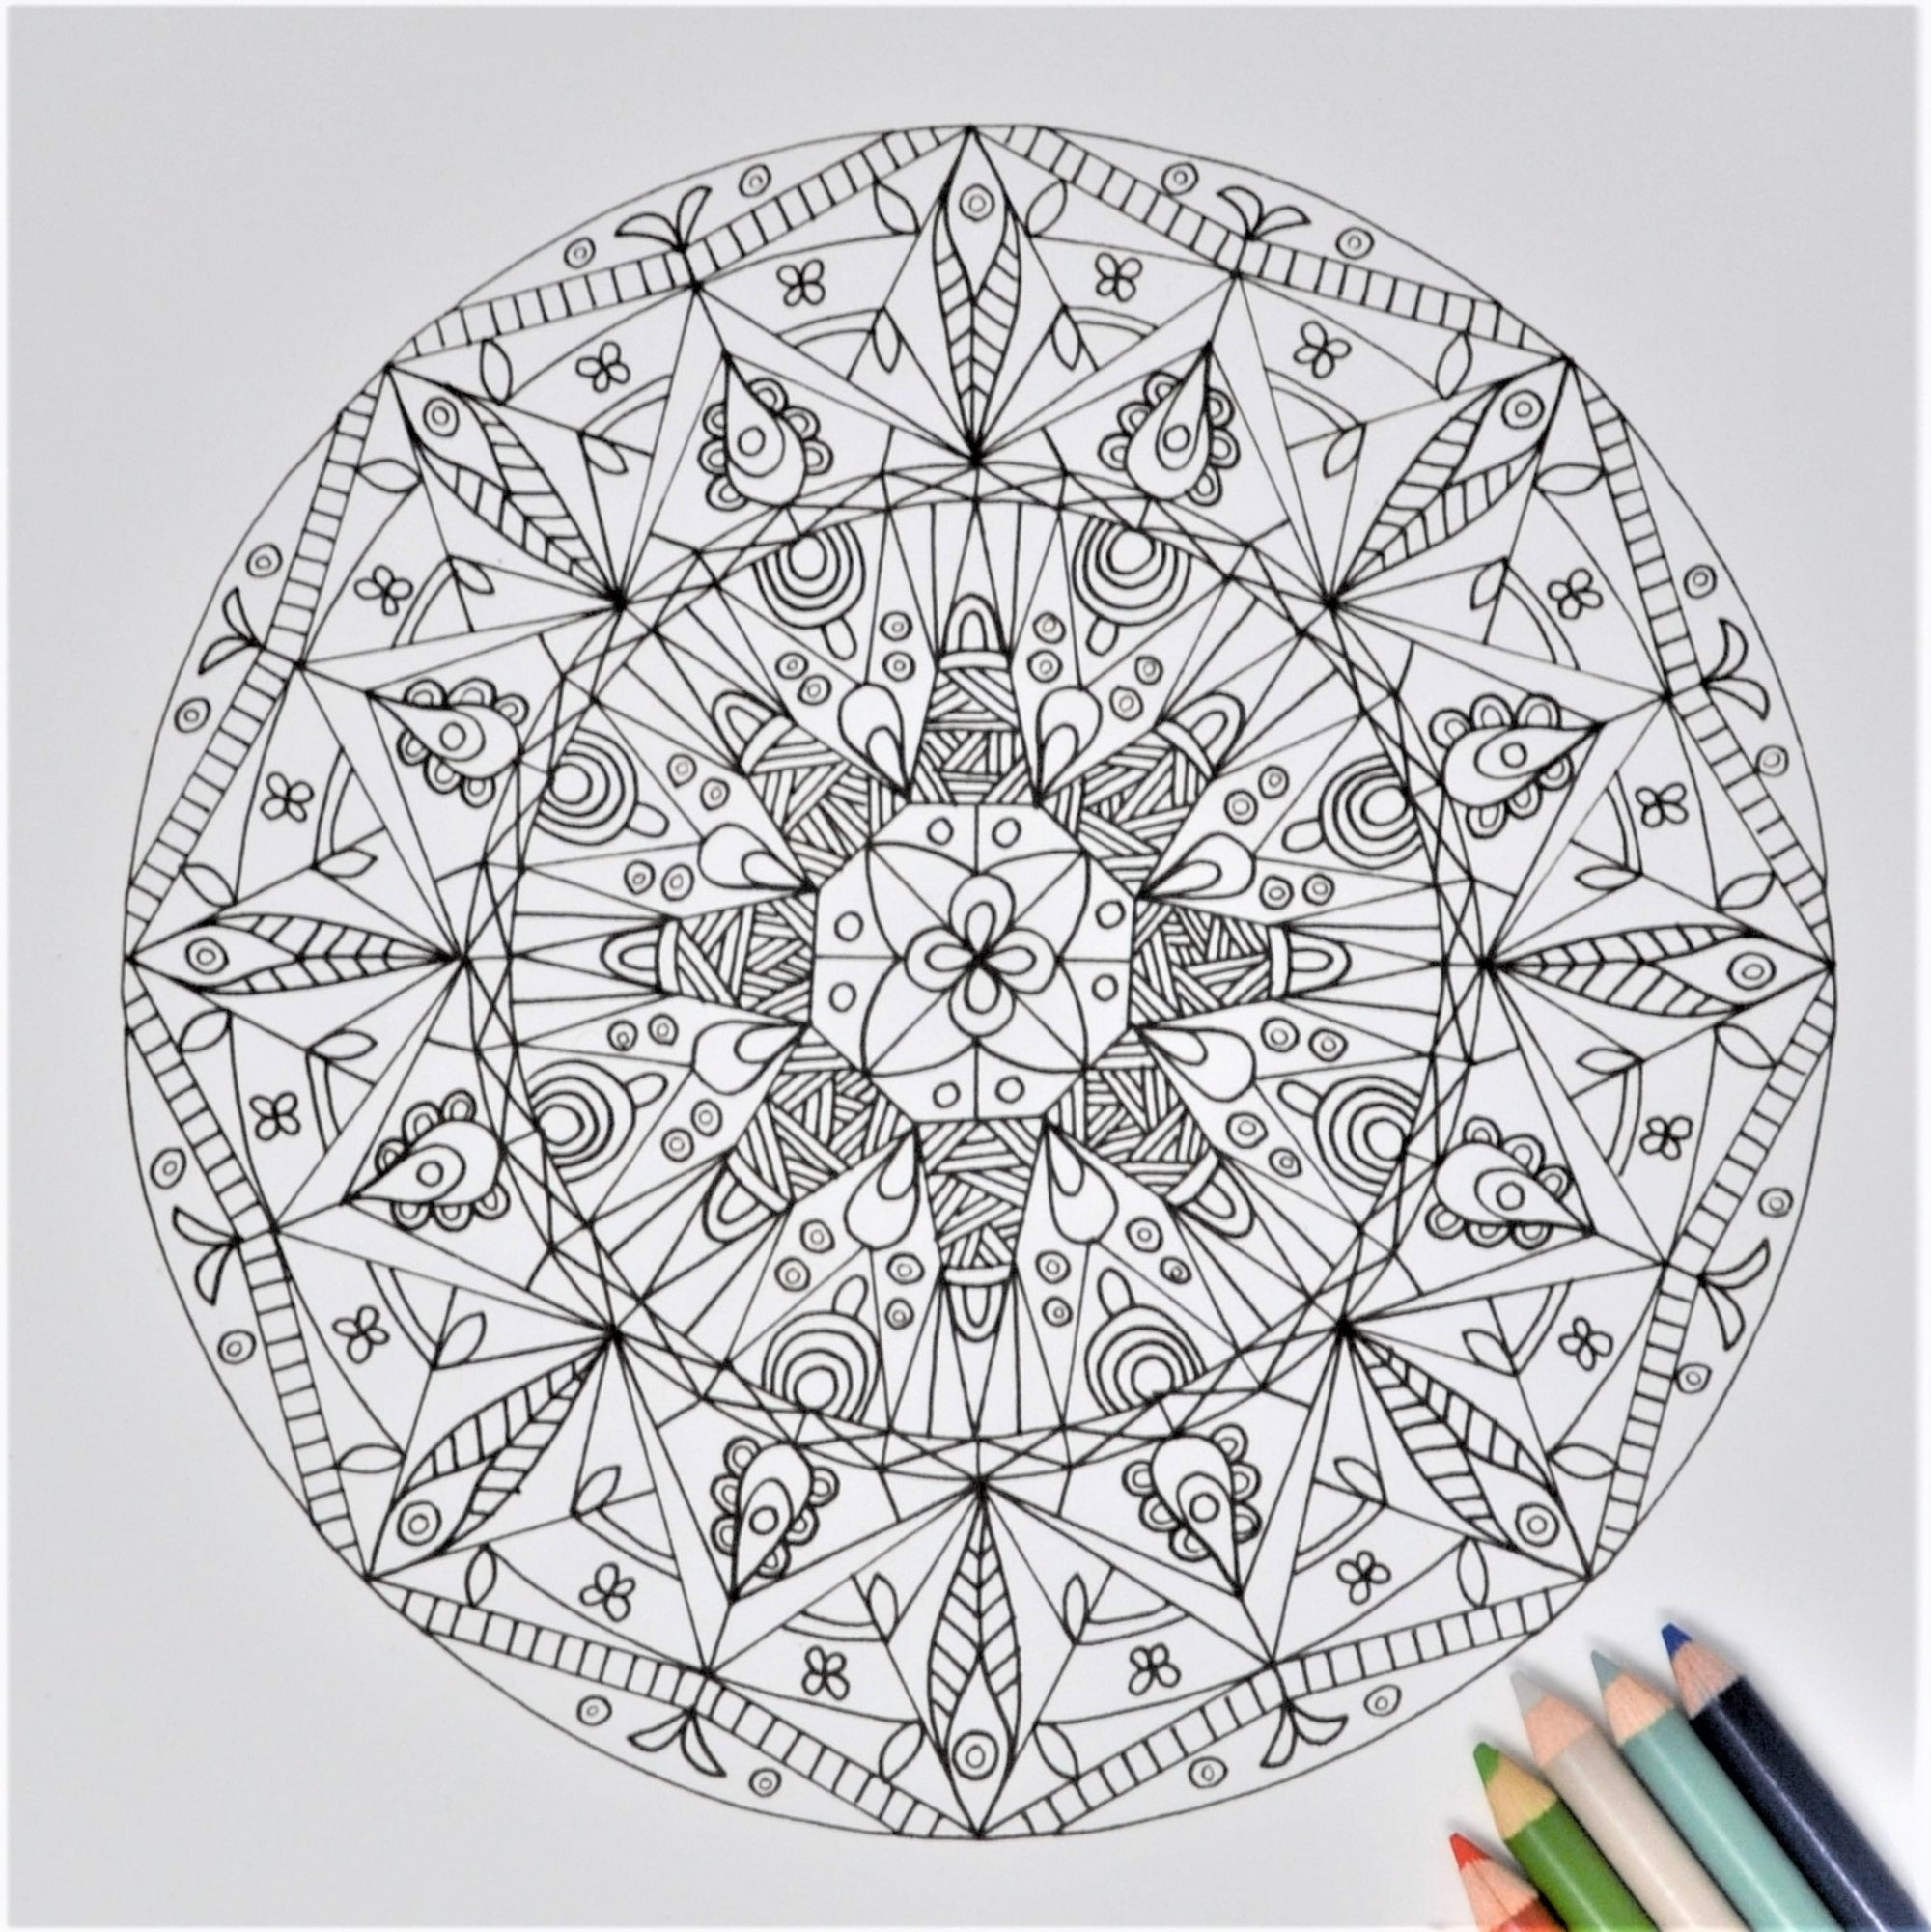 graphic relating to Printable Adult Coloring Pages Pdf referred to as Meditative Mandalas - Printable Grownup Coloring Guide PDF with